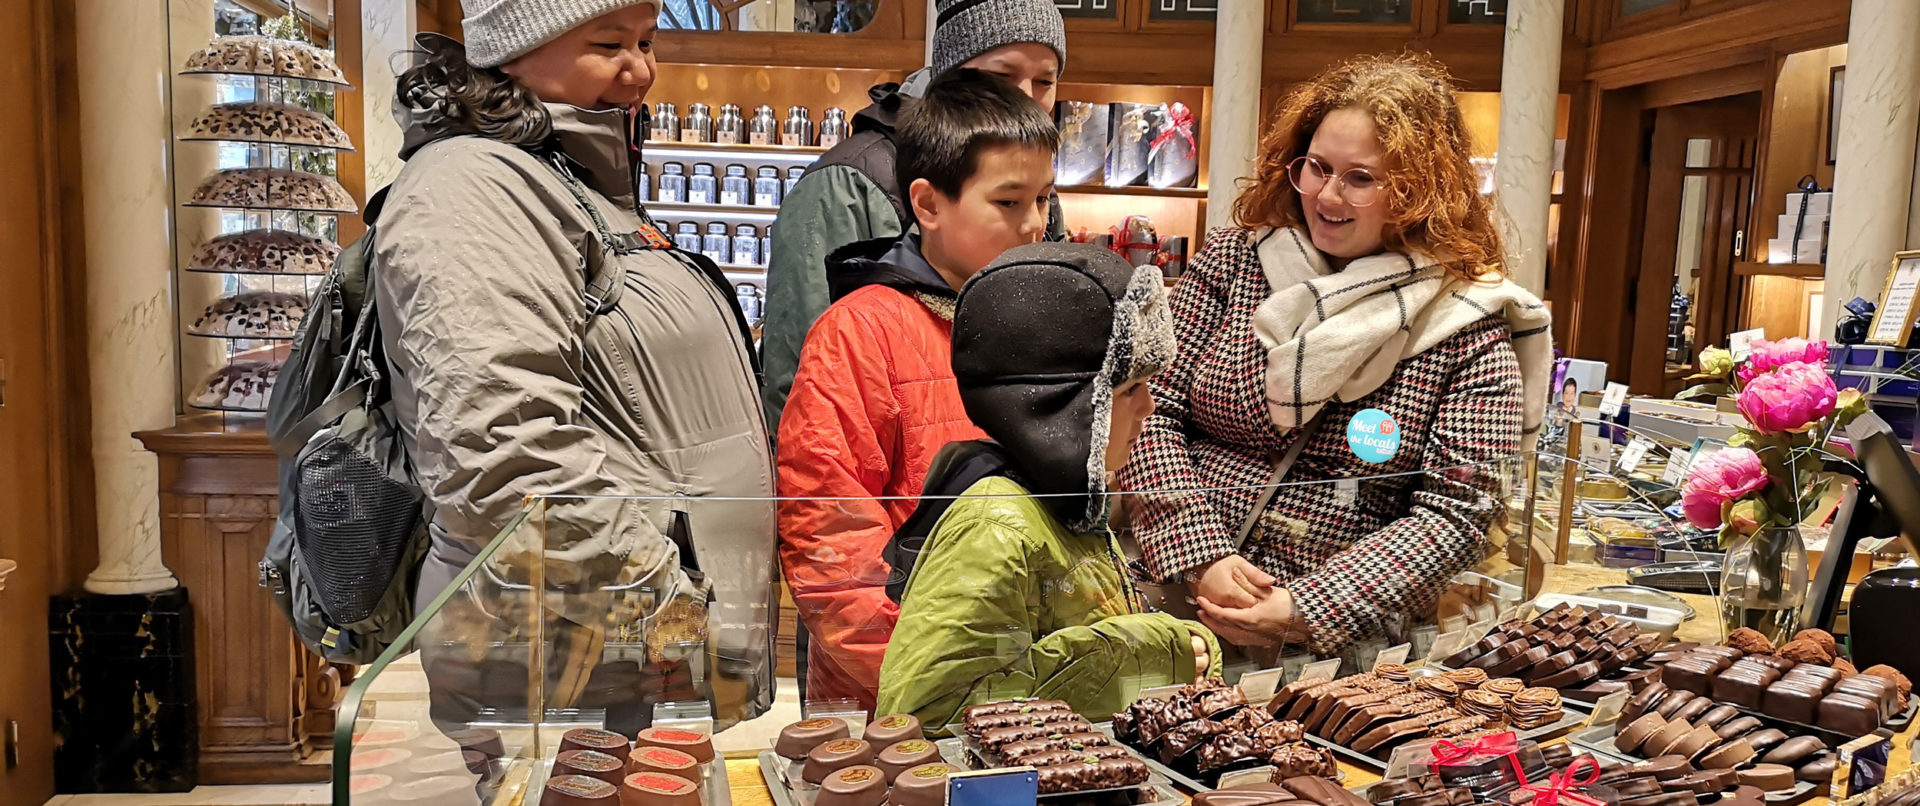 chocolate-scavenger-hunt-stores-walking-tour-private1